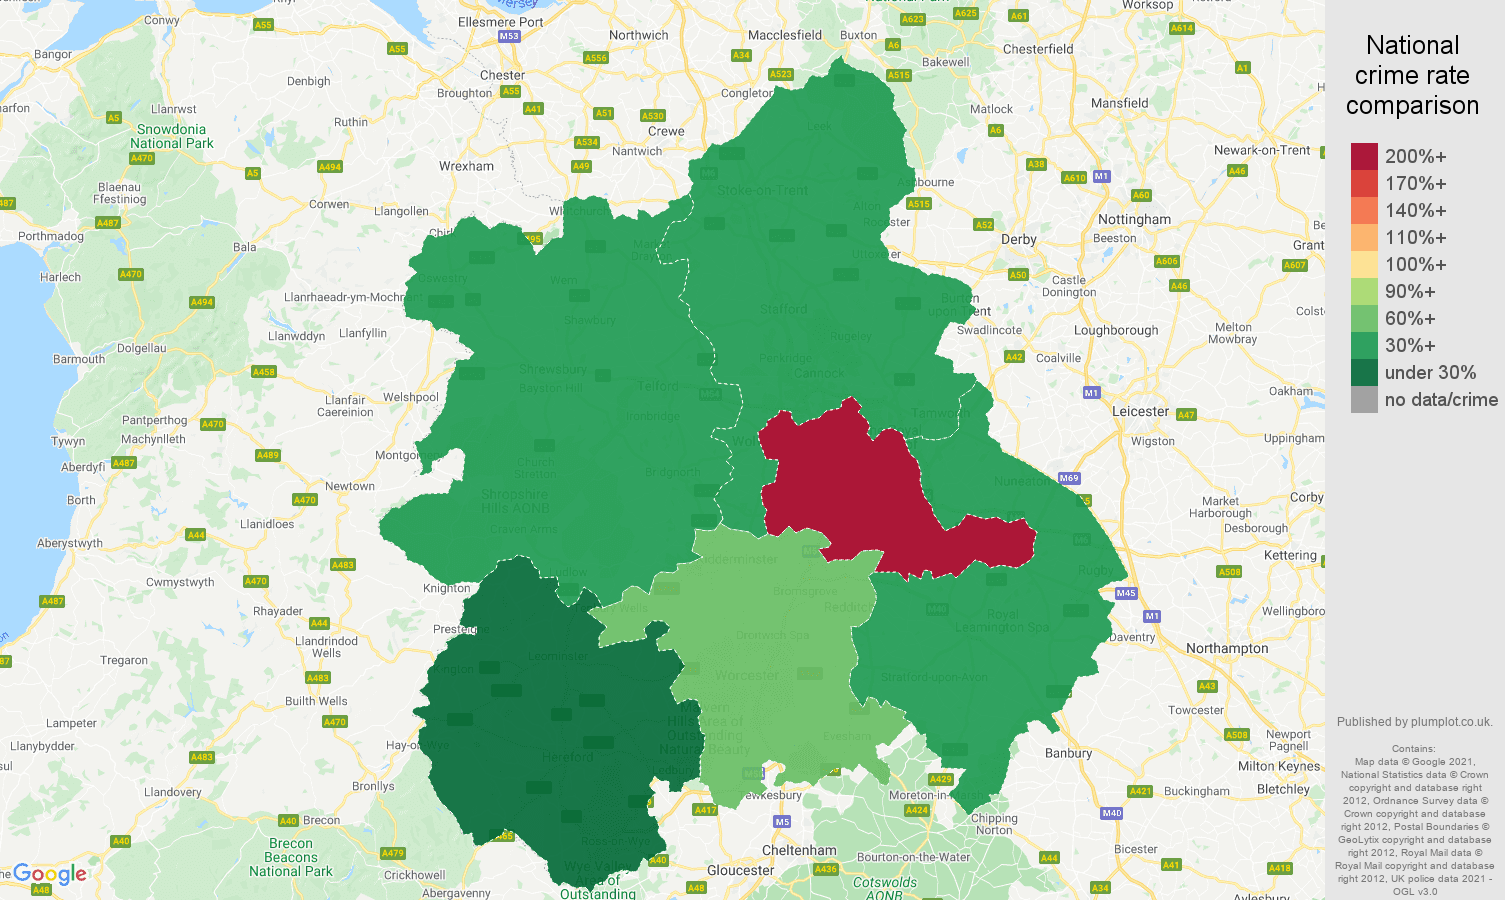 West Midlands robbery crime rate comparison map